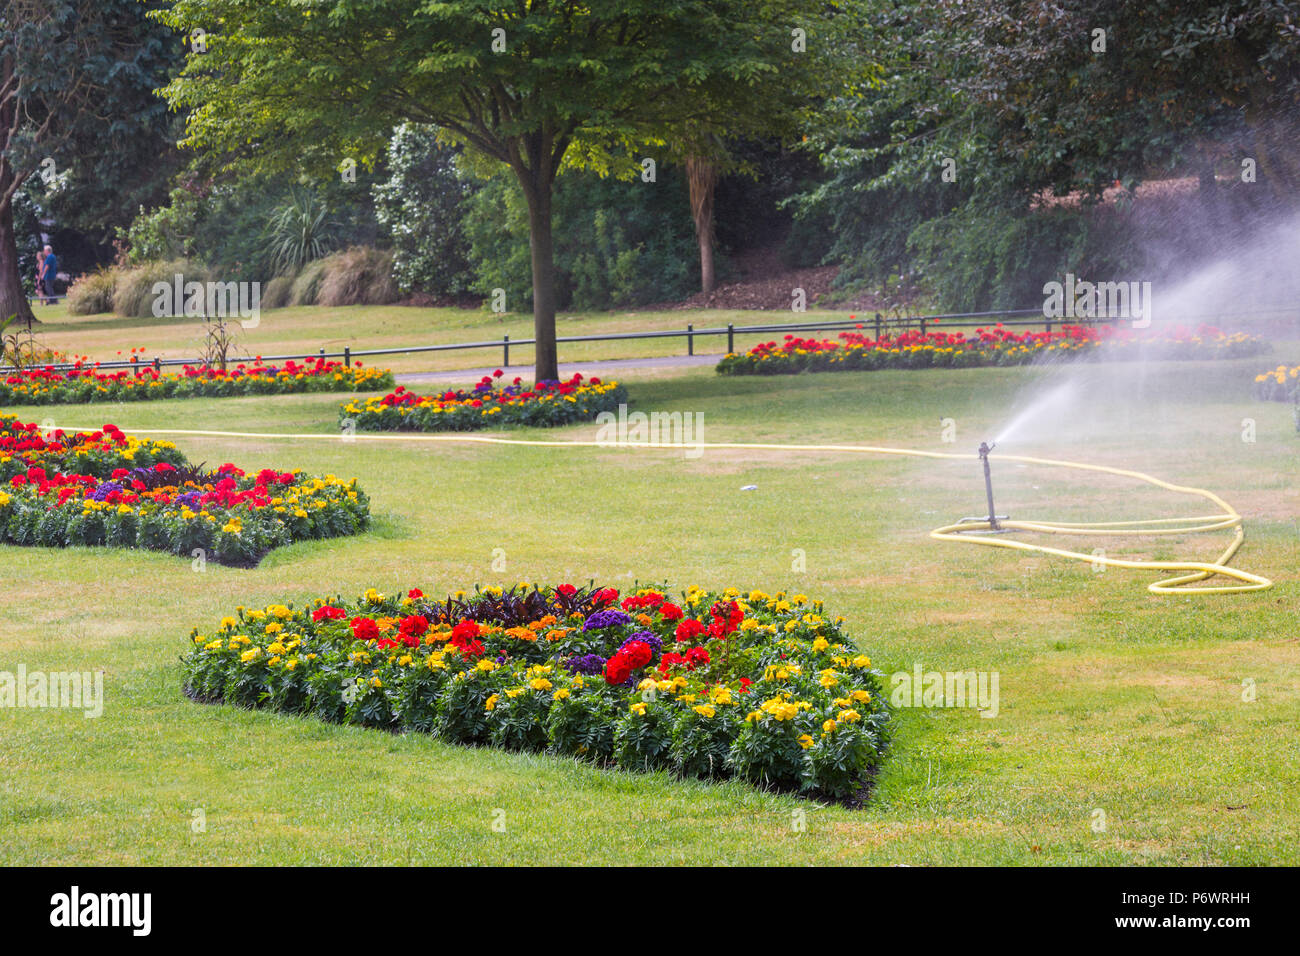 Tivoli Rome Weather Cooling Gardens Stock Photos And Cooling Gardens Stock